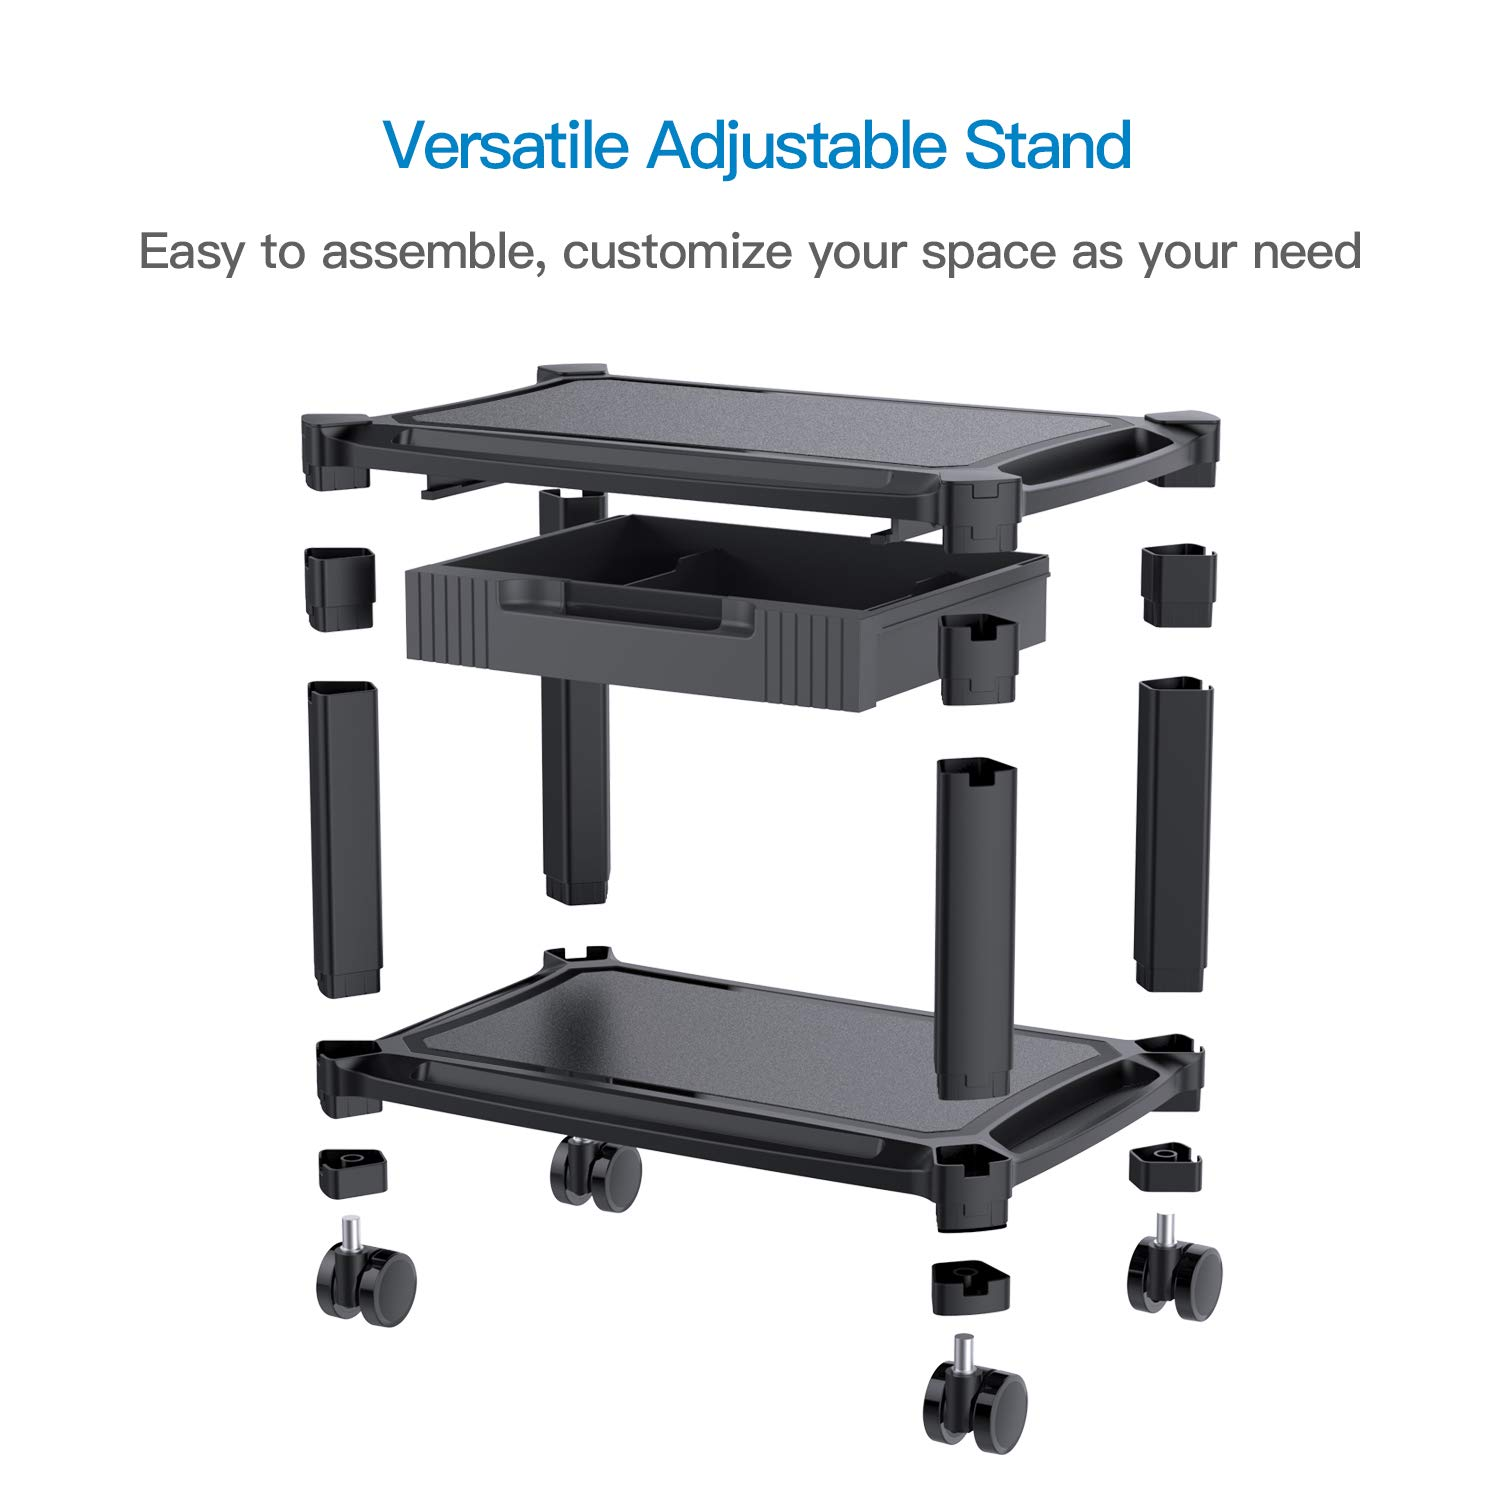 Printer Stand - Under Desk Printer Cart with 4 Rolling Wheels & Storage Drawer, Durable Printer Riser Shelf for Fax, Scanner, Office Supplies by HUANUO by HUANUO (Image #4)